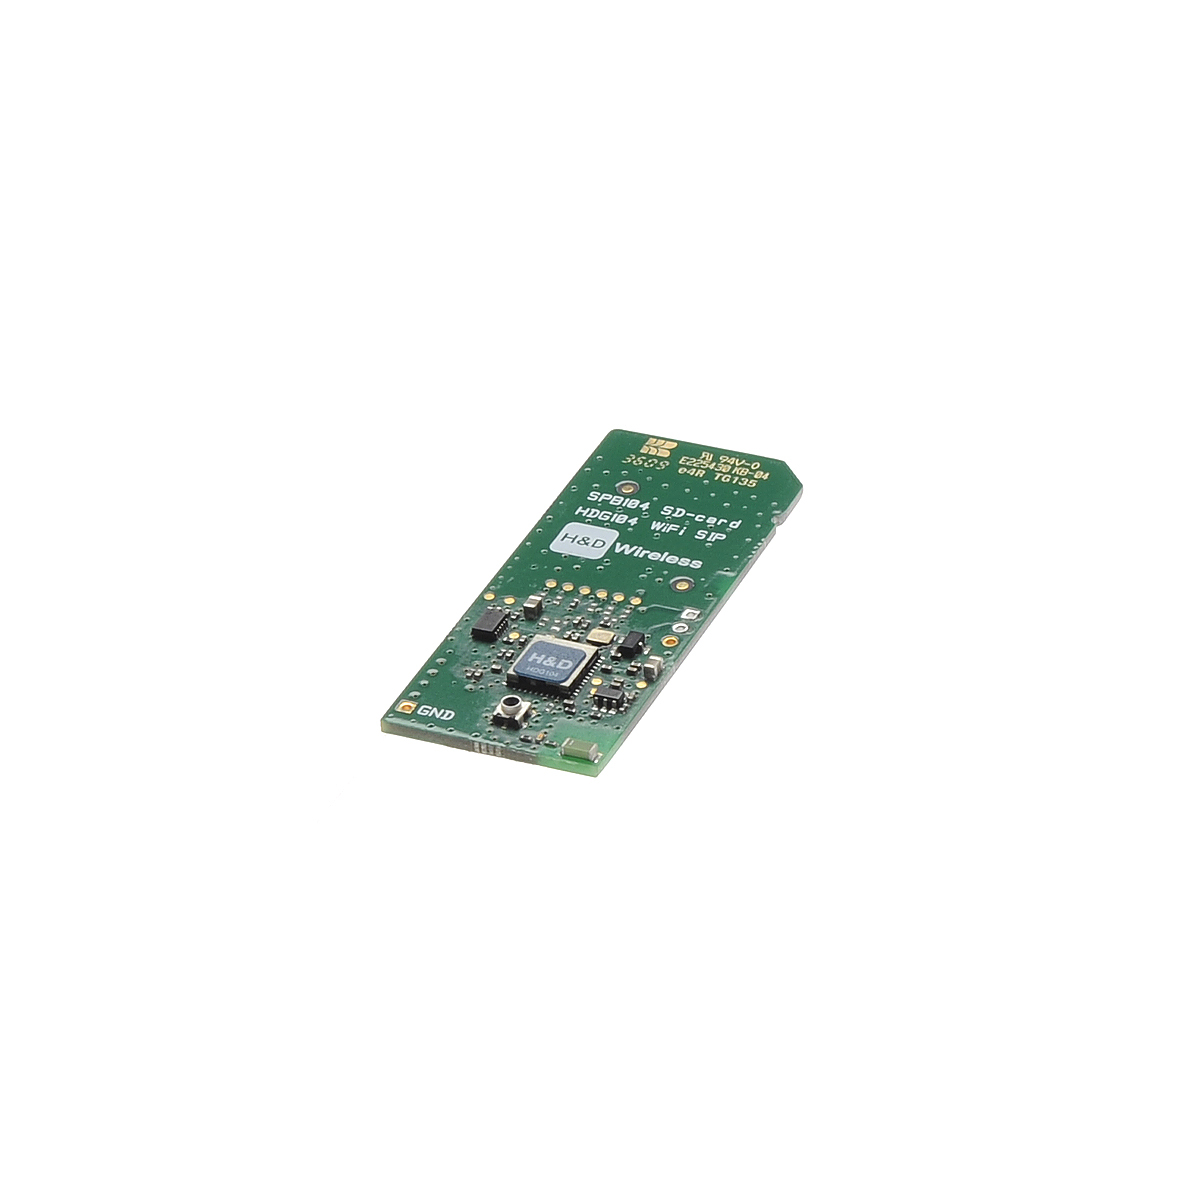 Mplabx Store Low Speed Avr Oscilloscope By Pic18f2550 Part Number Atextwifi